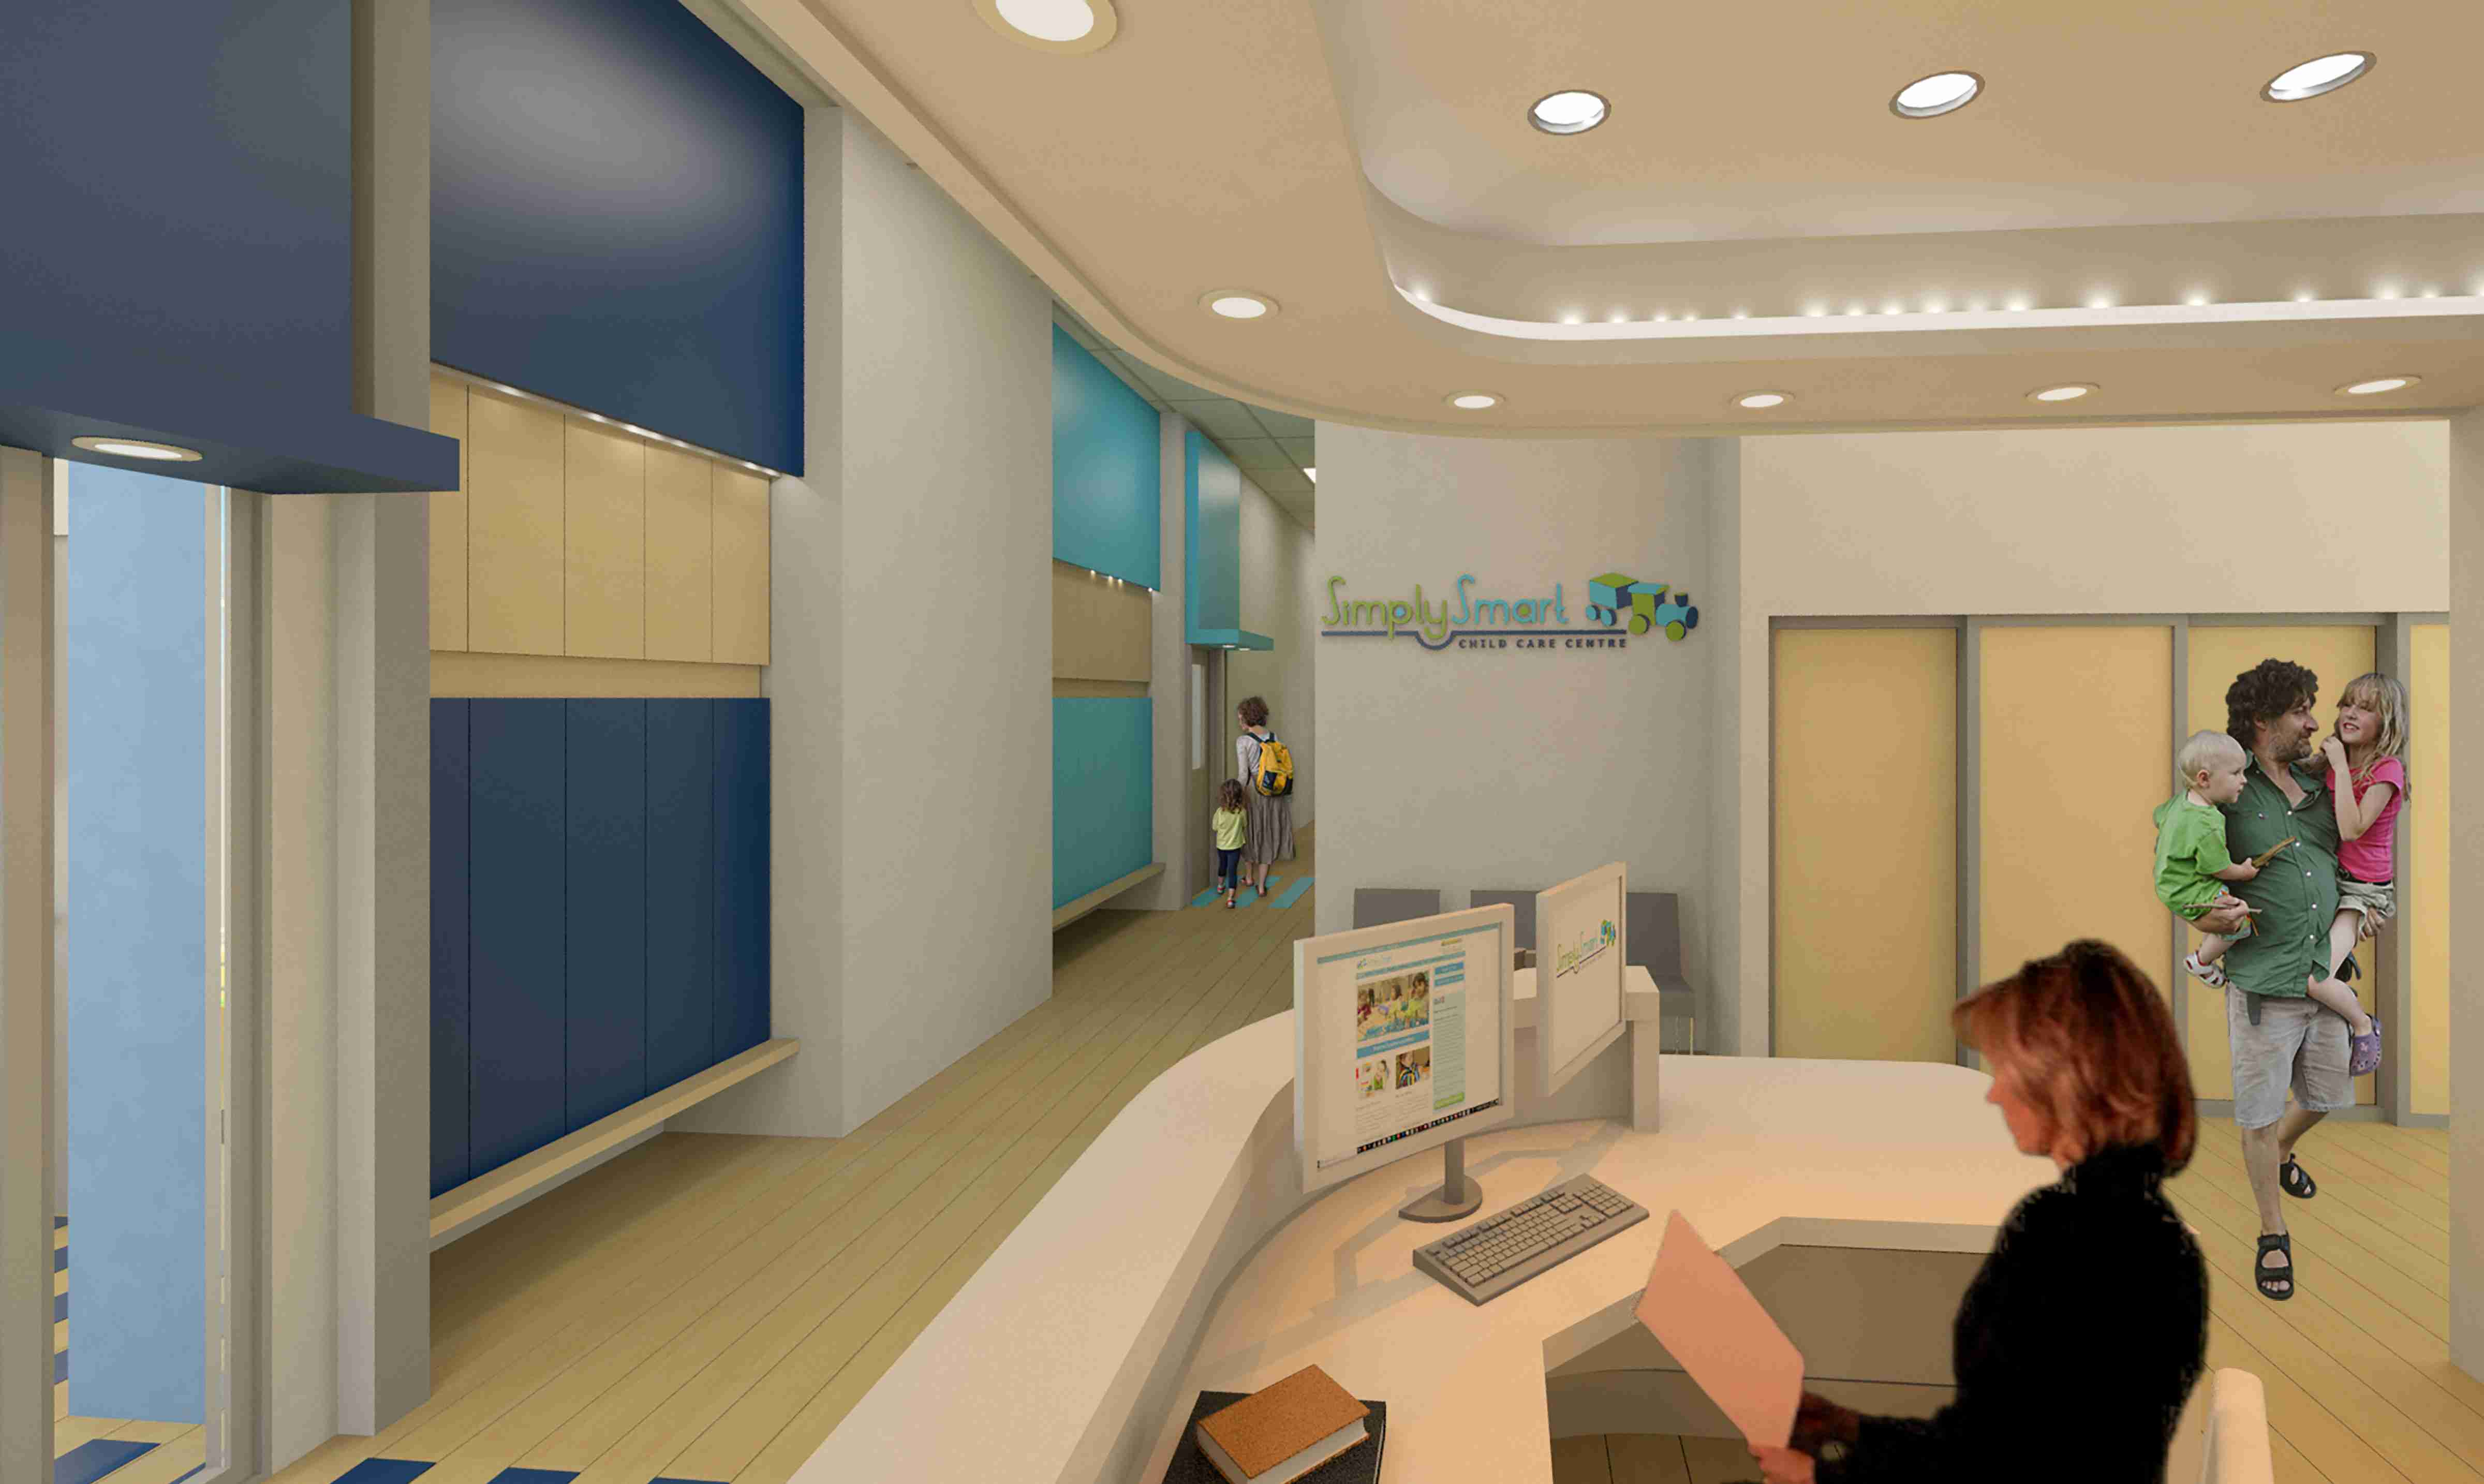 Reception area of SimplySmart Child Care showing staff and parents with children